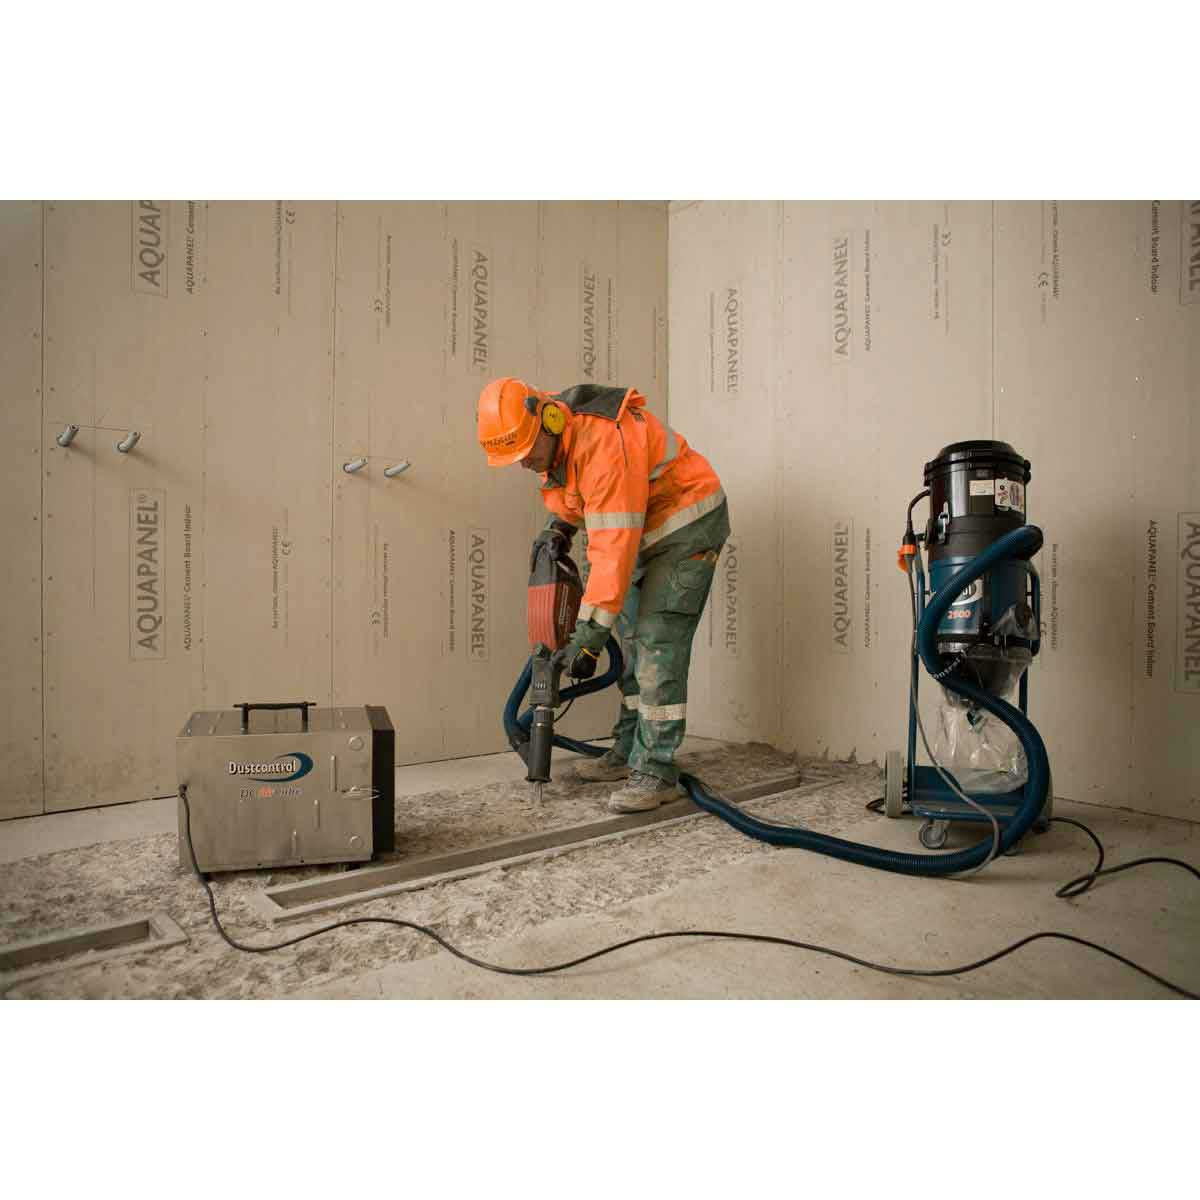 Demolition Hammer with Dustcontrol Extractor